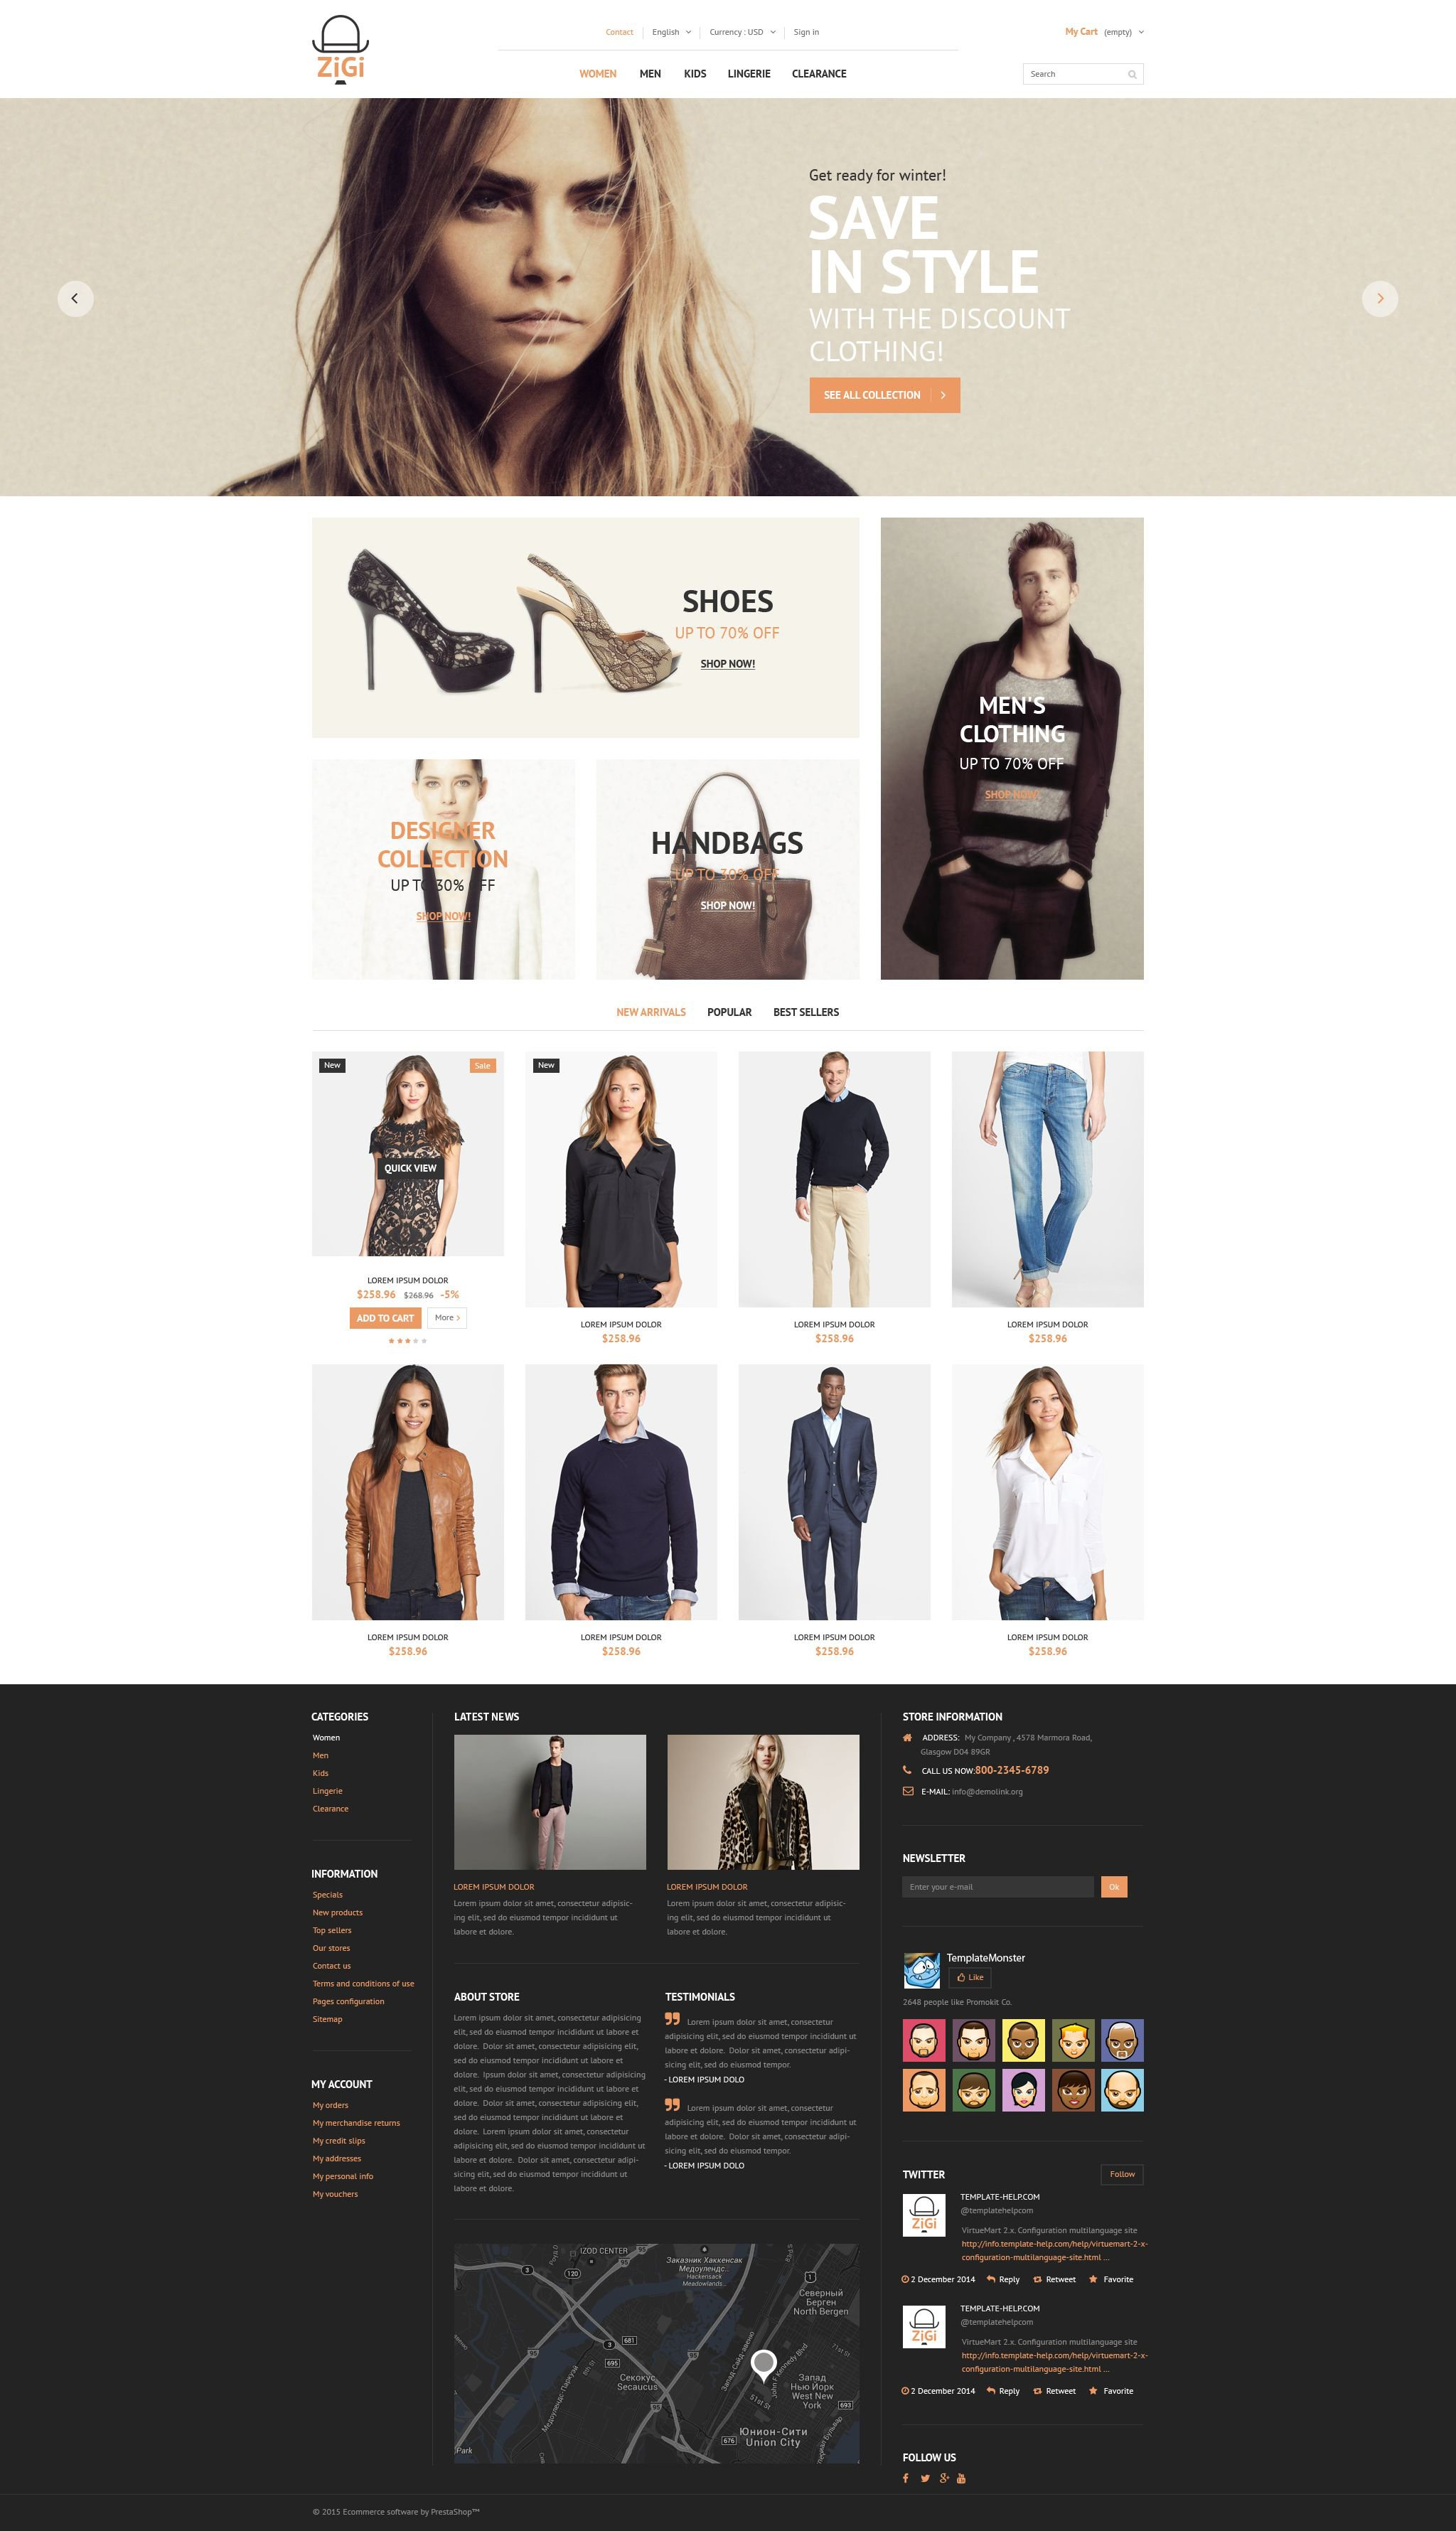 The Zigi Clothes PrestaShop Design 53483, one of the best PrestaShop themes of its kind (fashion, most popular), also known as zigi clothes PrestaShop template, wear PrestaShop template, clothing PrestaShop template, apparel PrestaShop template, work PrestaShop template, shoes PrestaShop template, gloves PrestaShop template, wear PrestaShop template, Safety Boots WEAR footwear PrestaShop template, shirts PrestaShop template, protective PrestaShop template, goggles PrestaShop template, protective PrestaShop template, eyewear and related with zigi clothes, wear, clothing, apparel, work, shoes, gloves, wear, Safety Boots WEAR footwear, shirts, protective, goggles, protective, eyewear, etc.